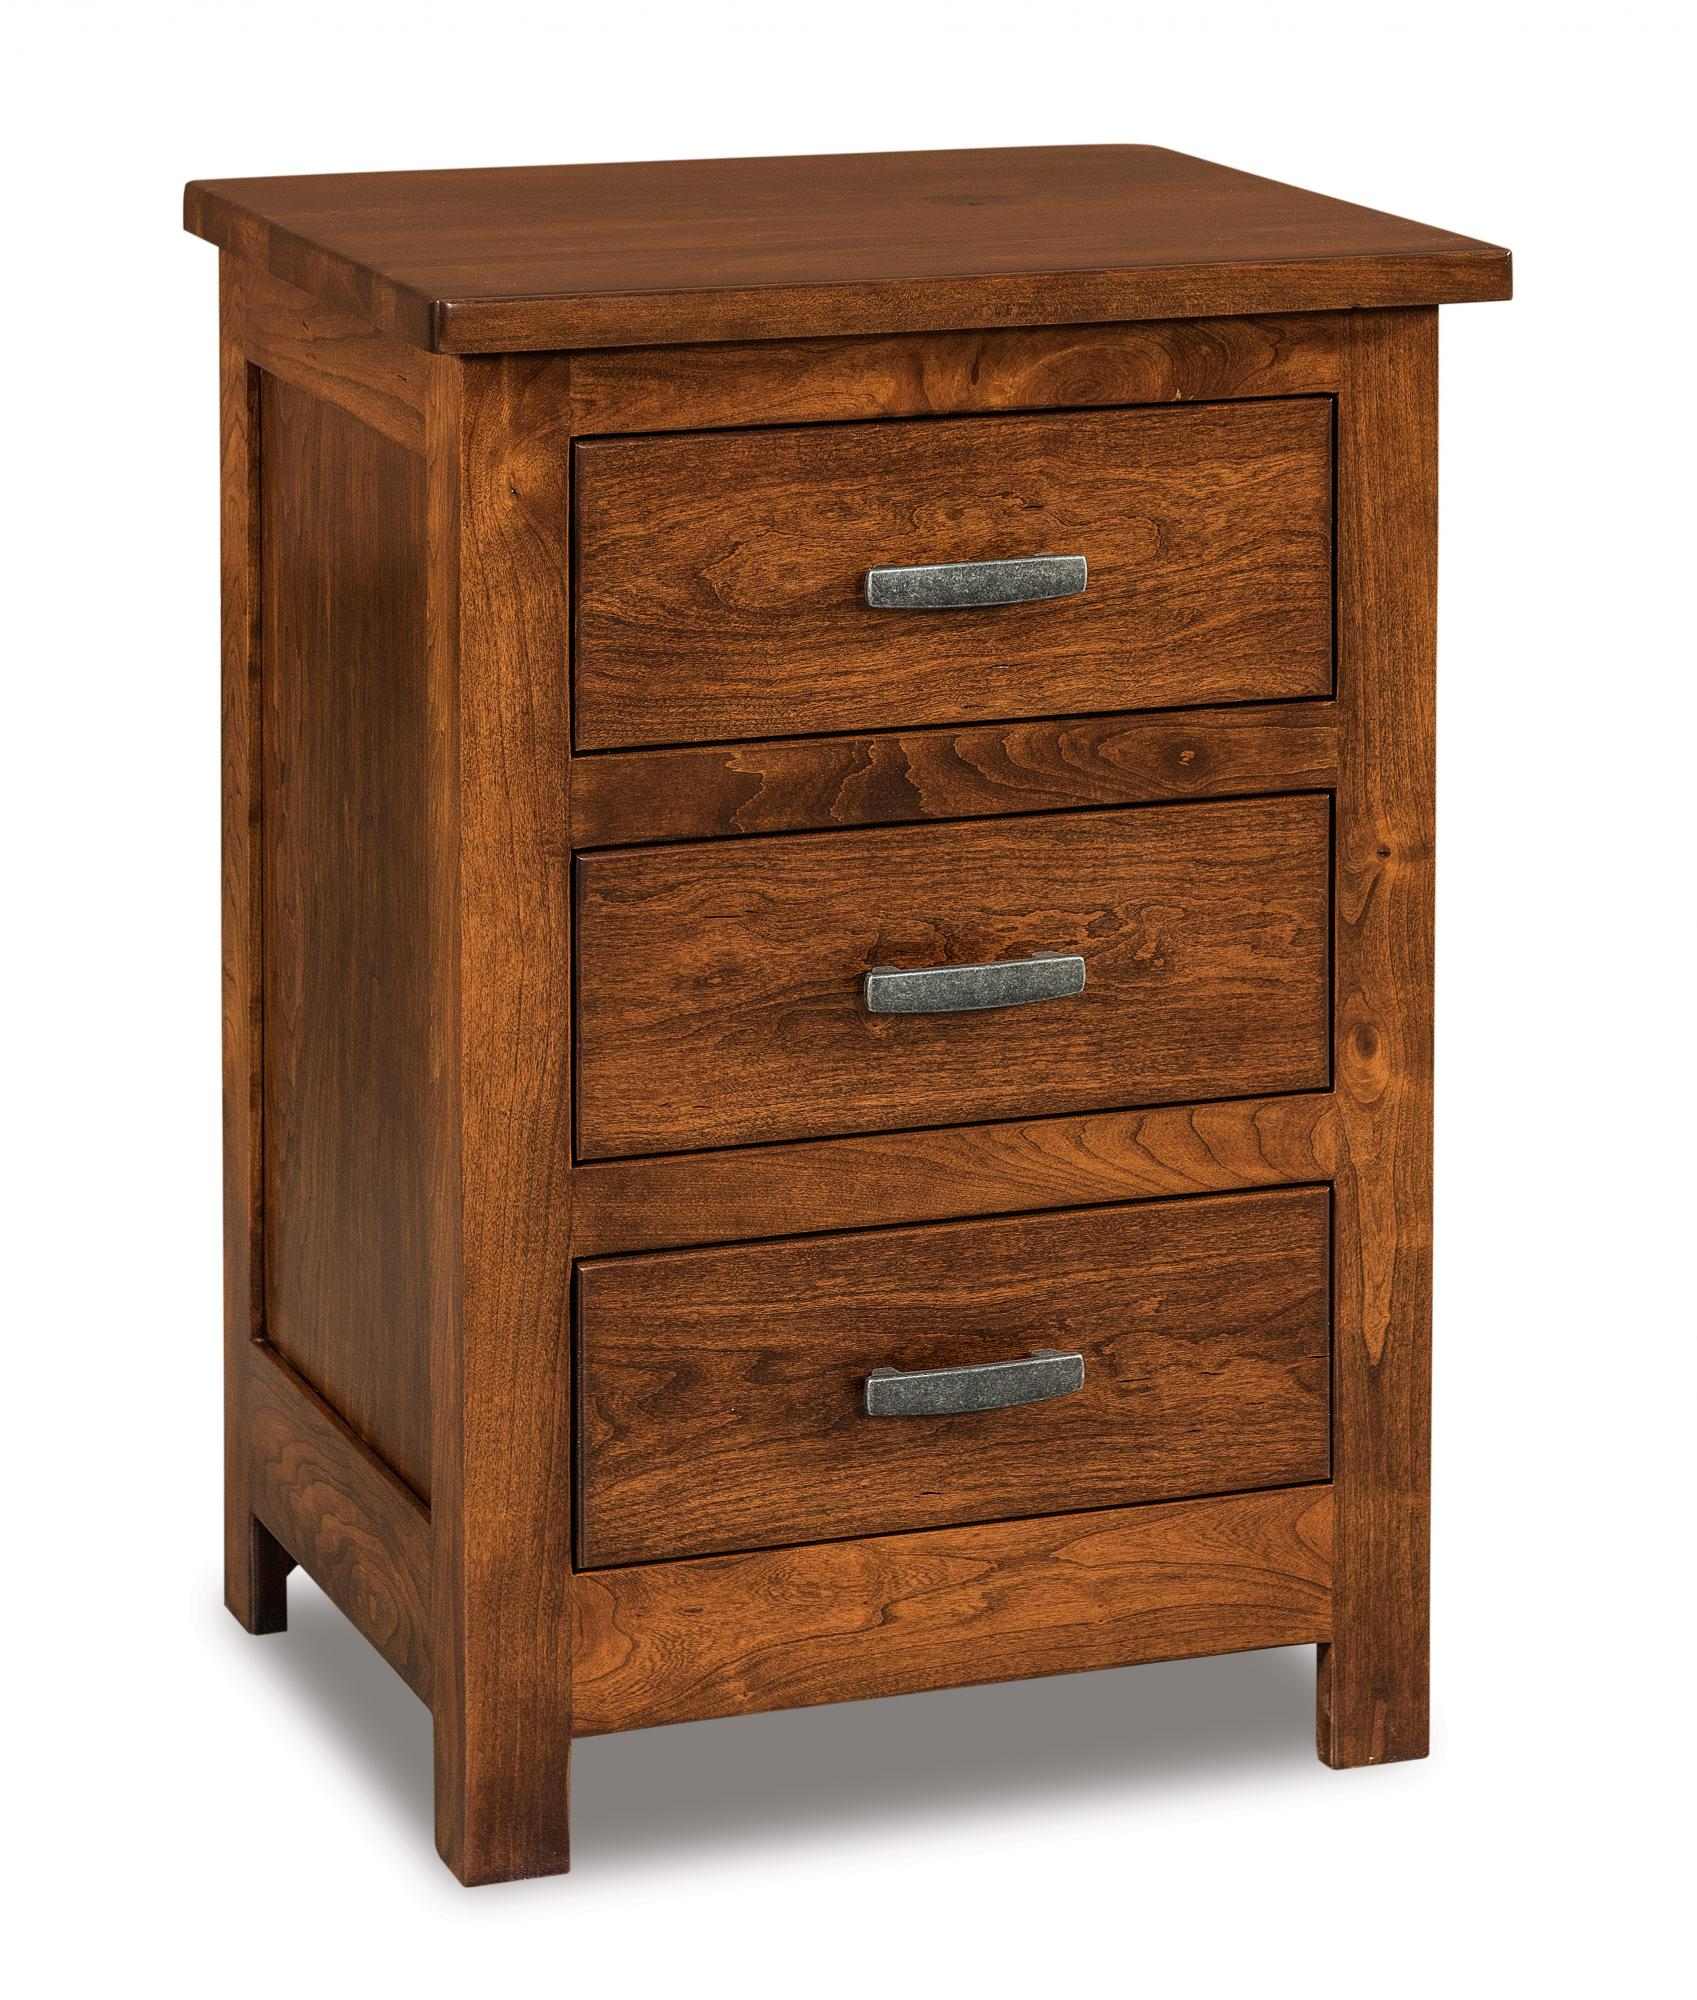 3 drawer nightstand tall amish furniture store mankato mn How tall is a nightstand